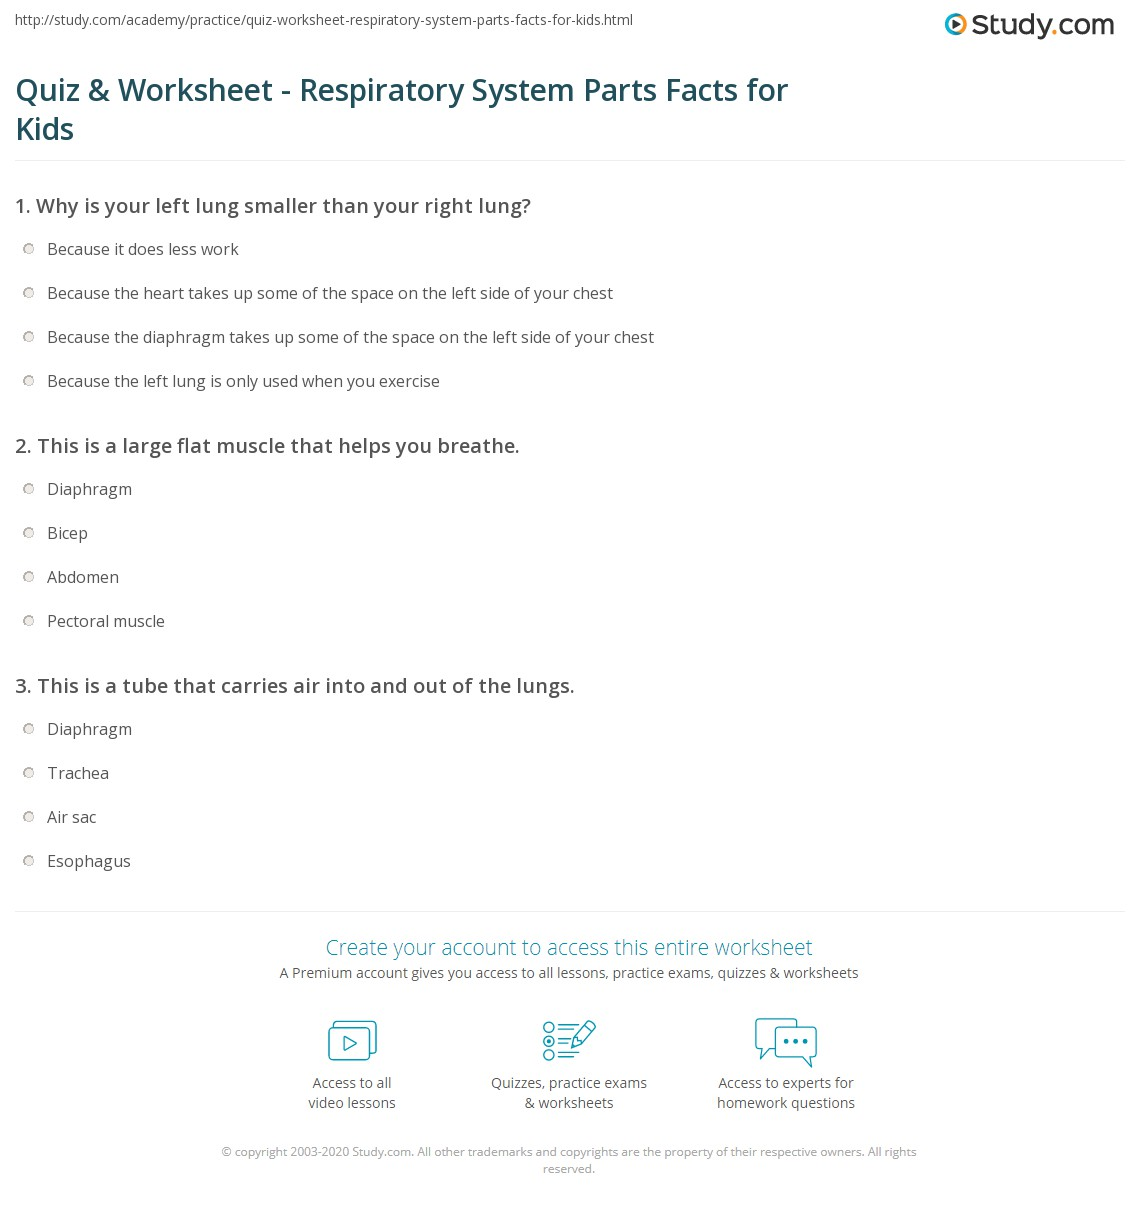 Quiz Worksheet Respiratory System Parts Facts For Kids